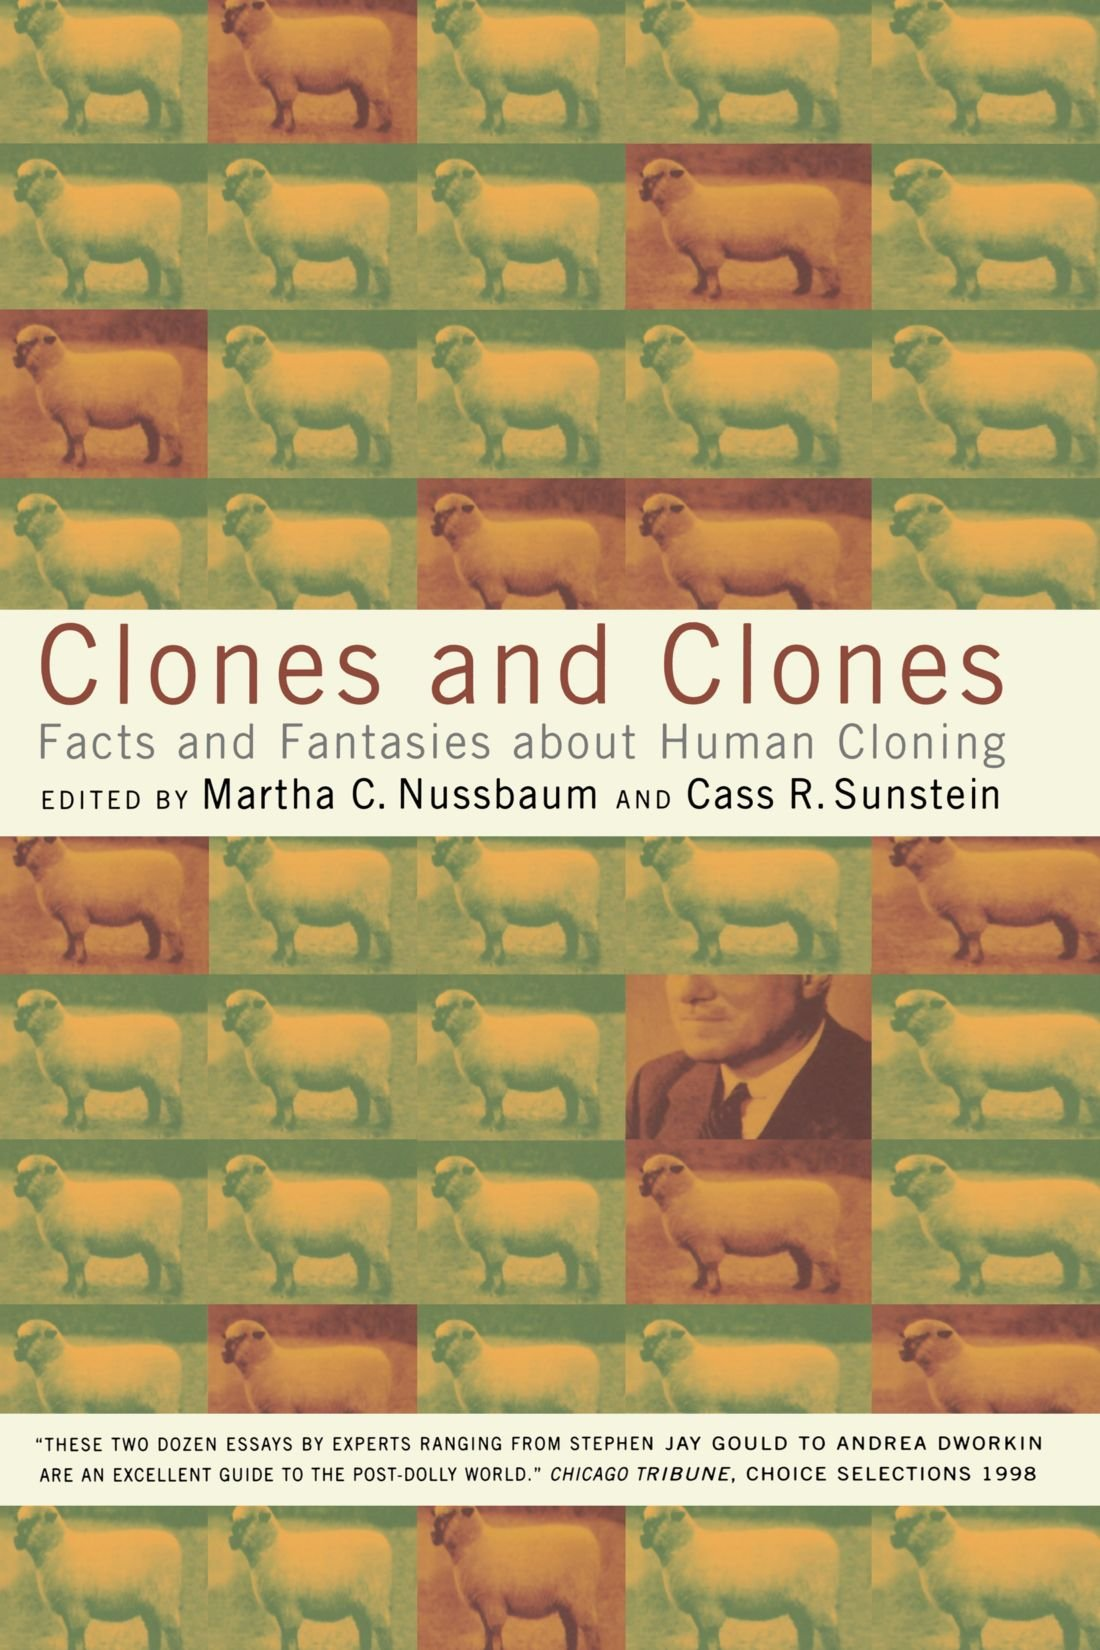 clones and clones facts and fantasies about human cloning amazon  clones and clones facts and fantasies about human cloning amazon co uk martha c nussbaum cass r sunstein 9780393320015 books